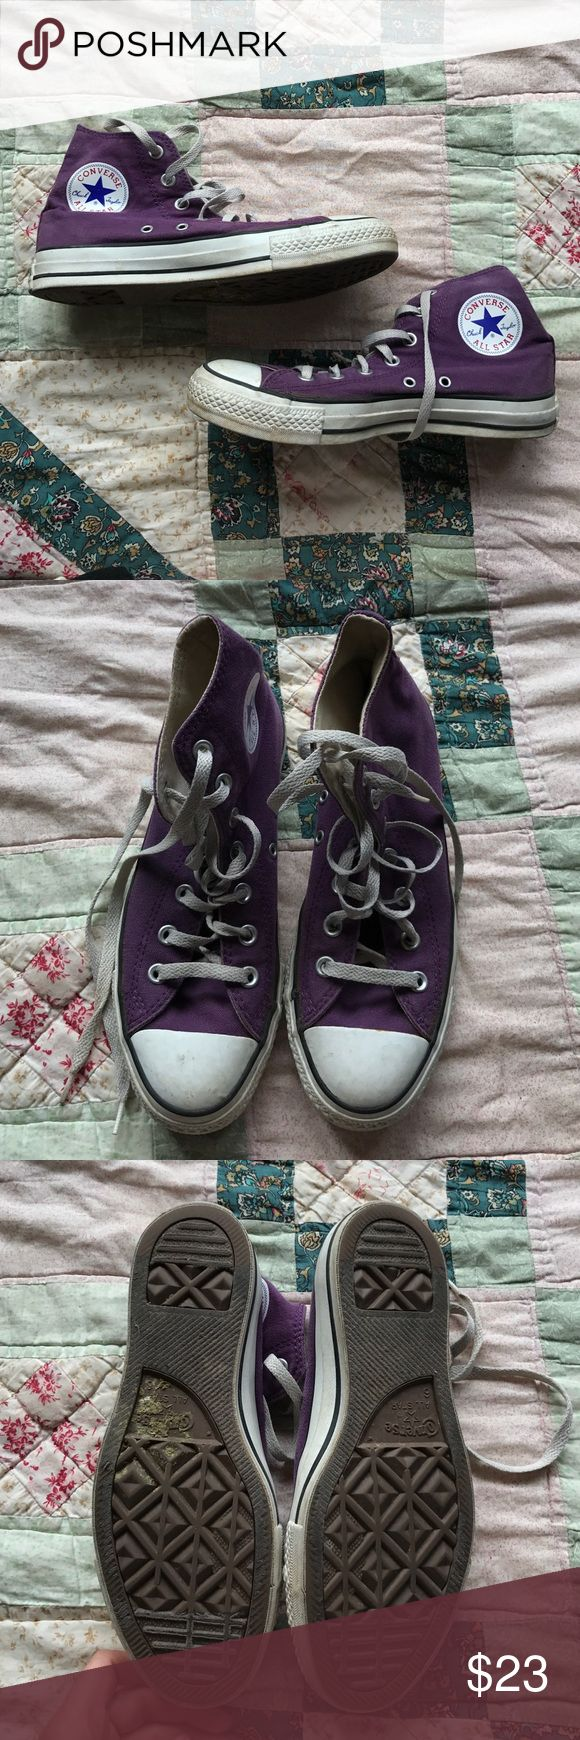 Purple High Top Chuck Taylor Converse These are worn but still have lots of life left in them. Chucks only get better with time :) WOMAN's size 8, MAN's size 6 Converse Shoes Sneakers